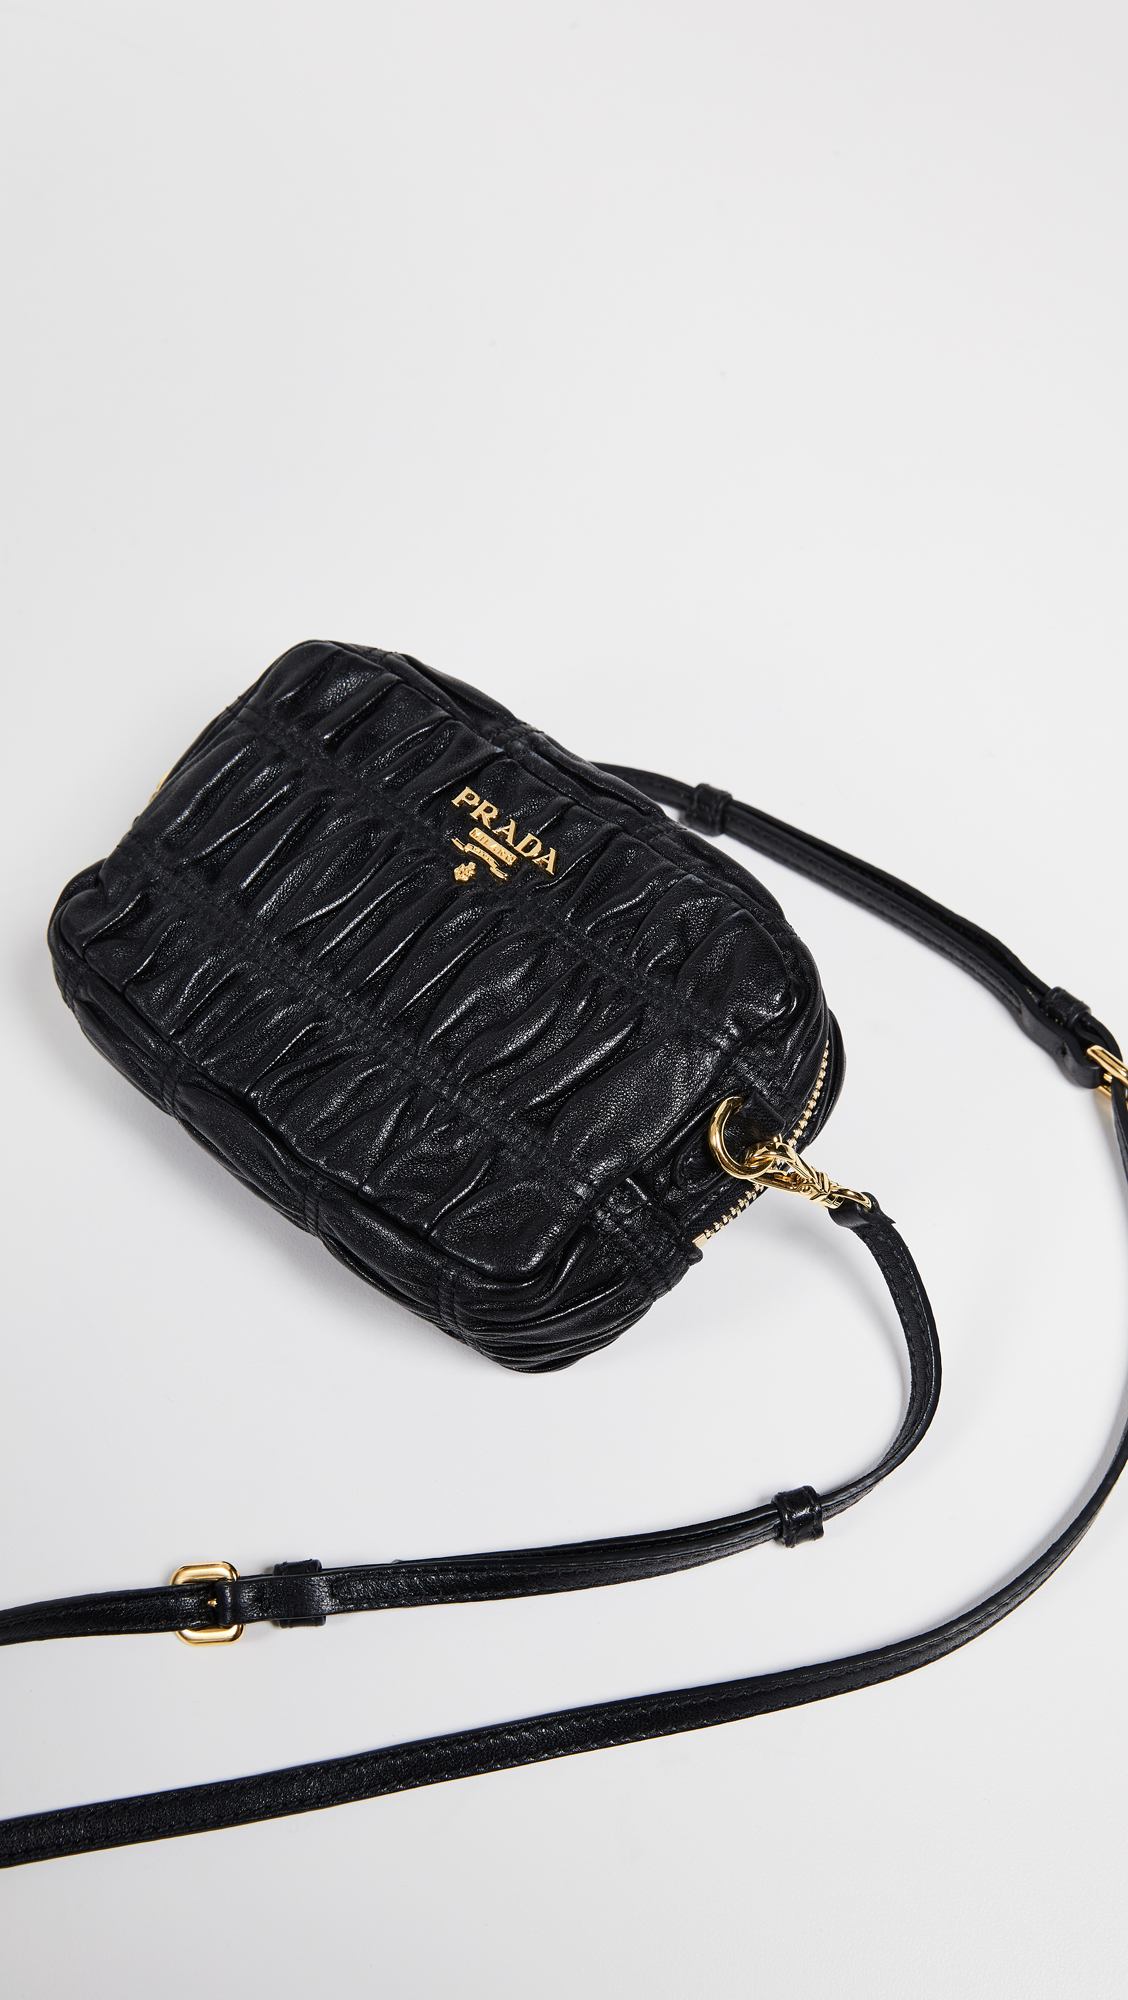 19f3926d254140 What Goes Around Comes Around Prada Black Nappa Gaufre Mini Bag | SHOPBOP